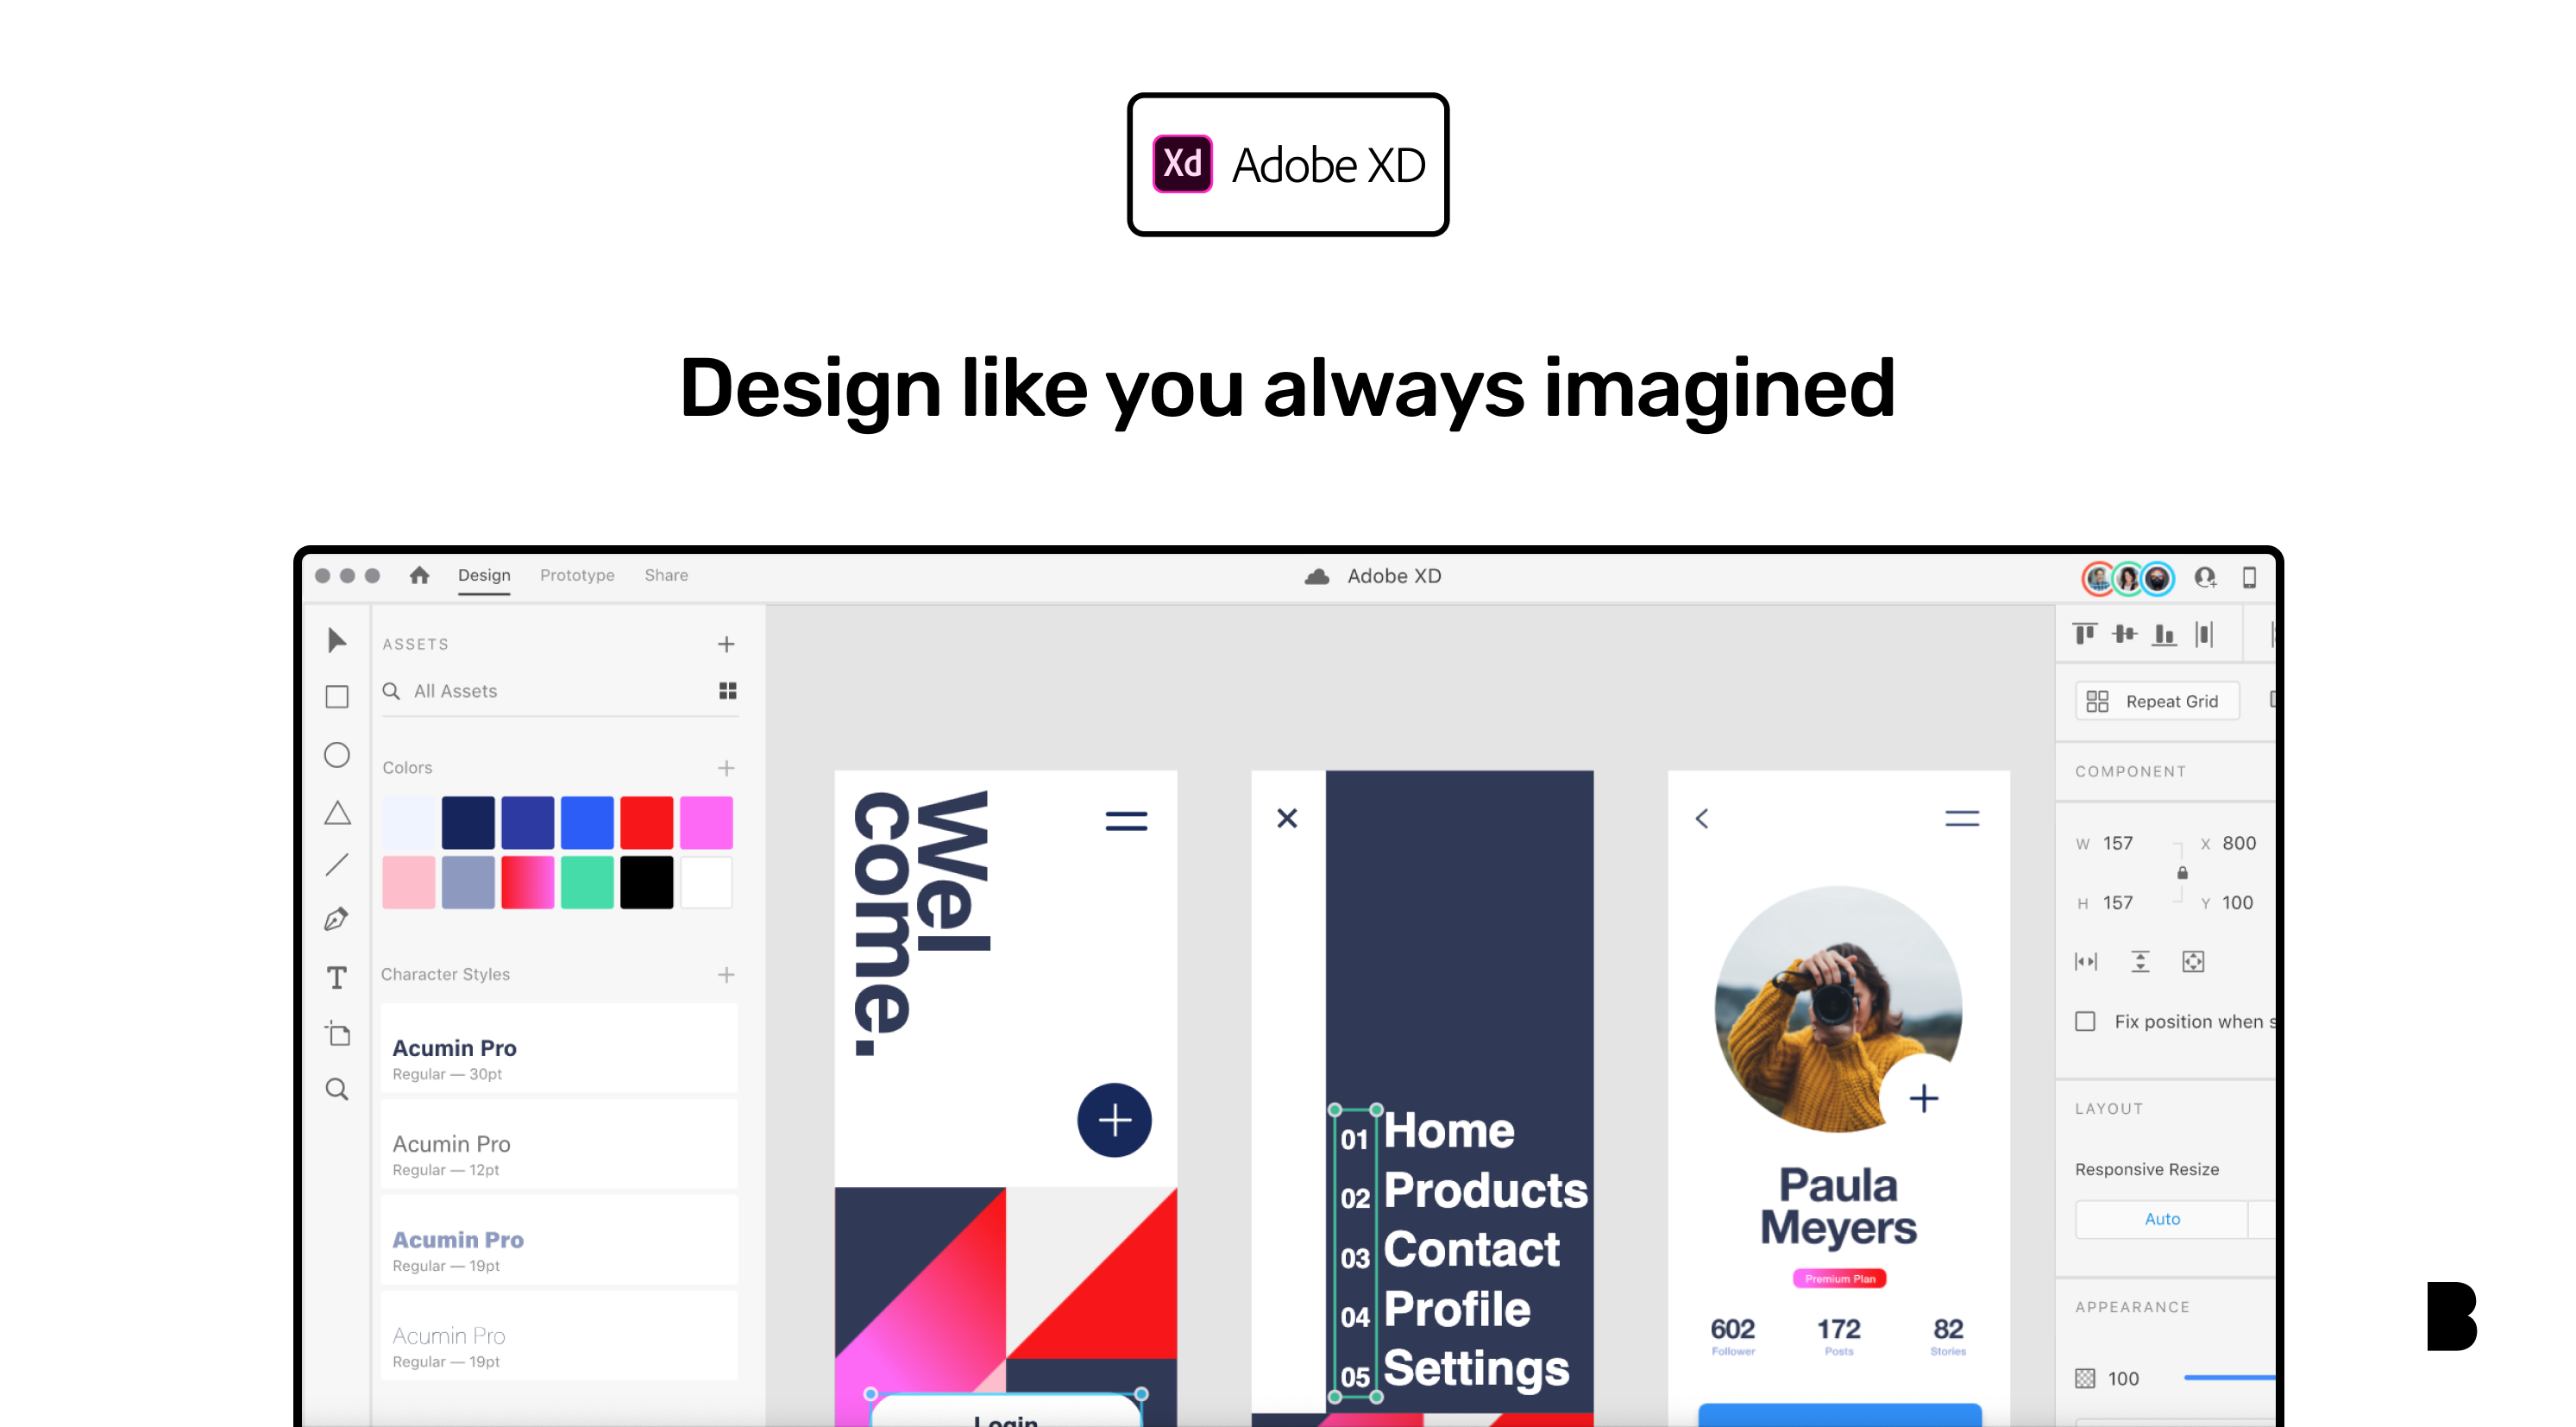 Adobe XD design board with illustration